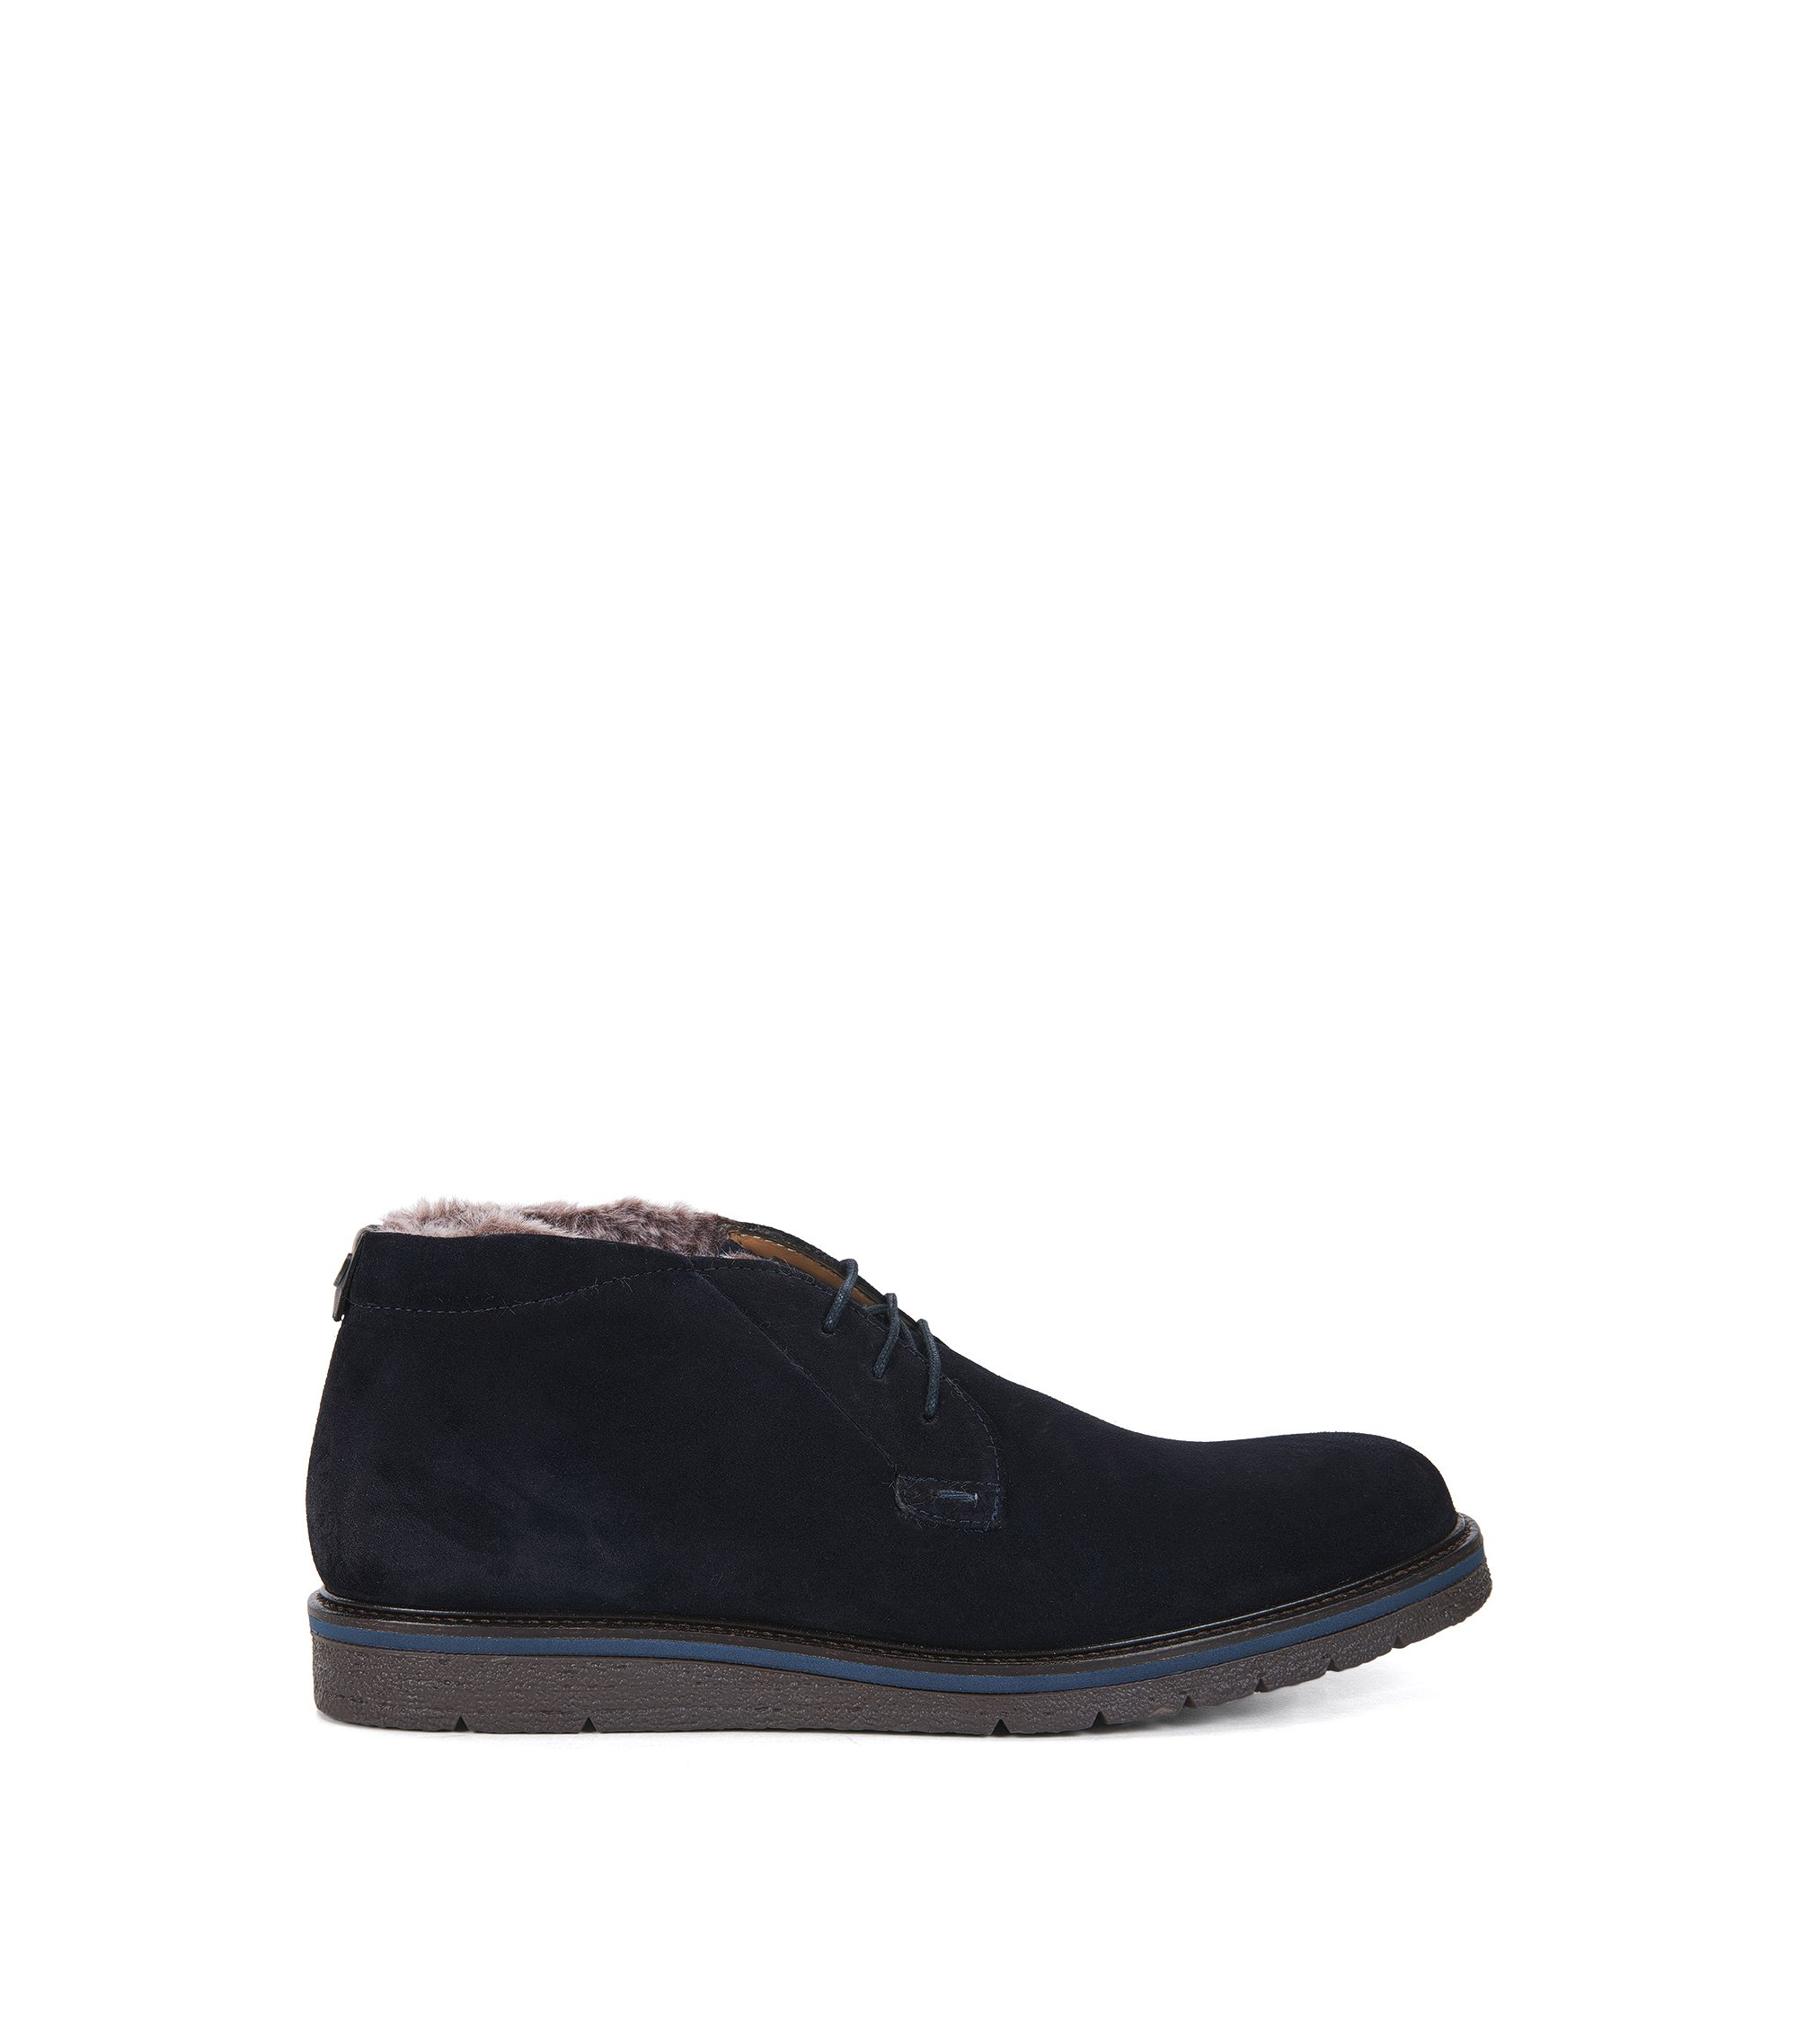 Fur-Lined Suede Desert Boot | Tuned Desb Sdfur, Dark Blue